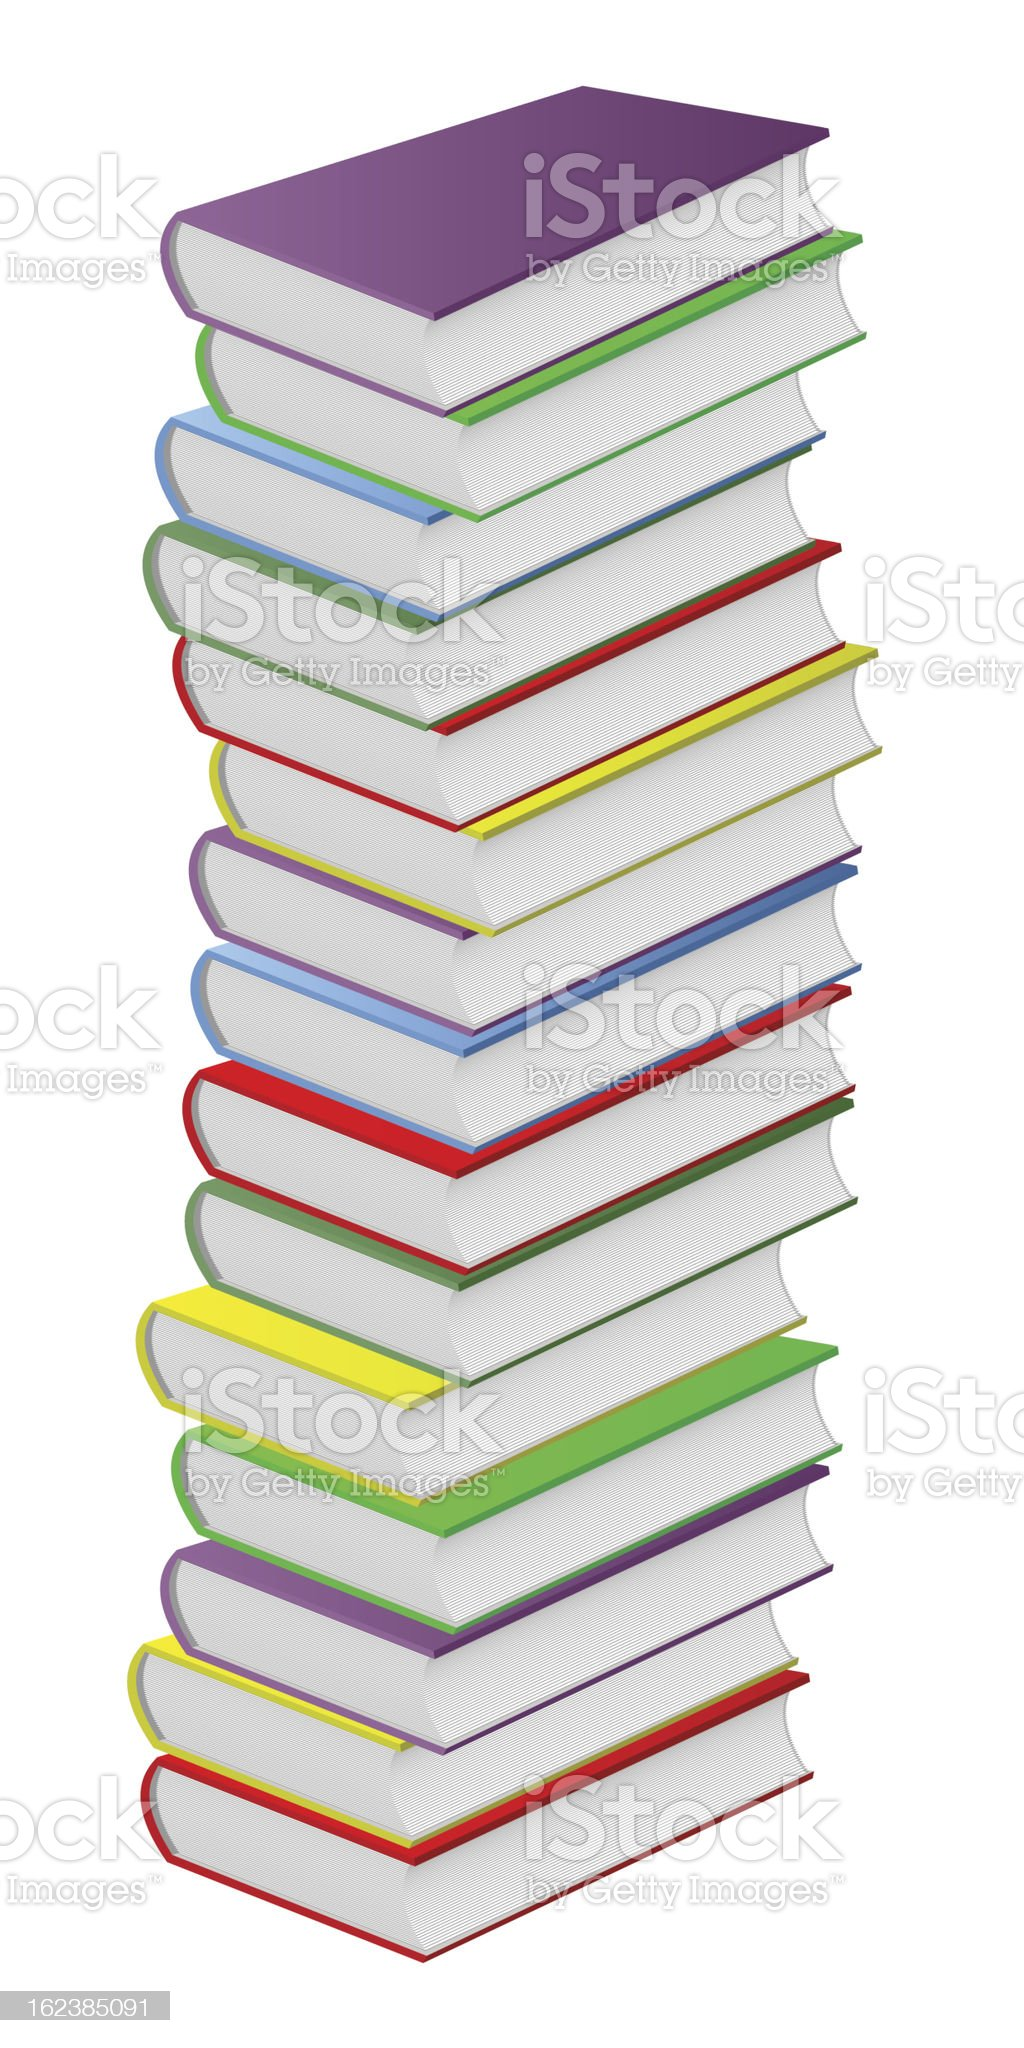 Multicolored books. royalty-free stock vector art